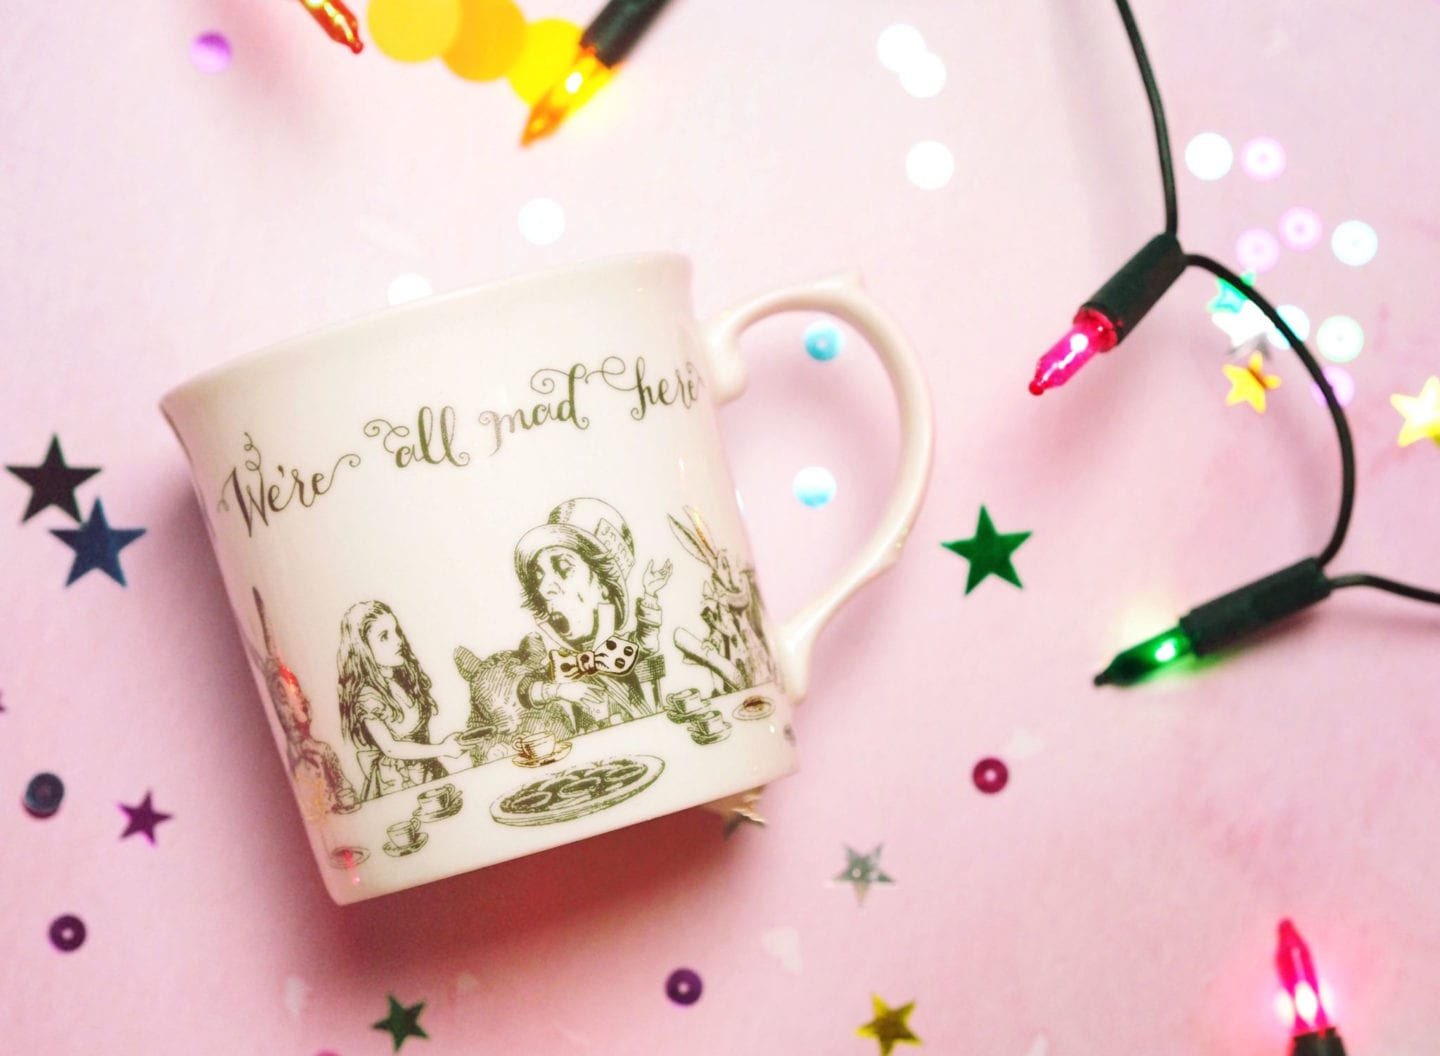 alice-in-wonderland-mugs